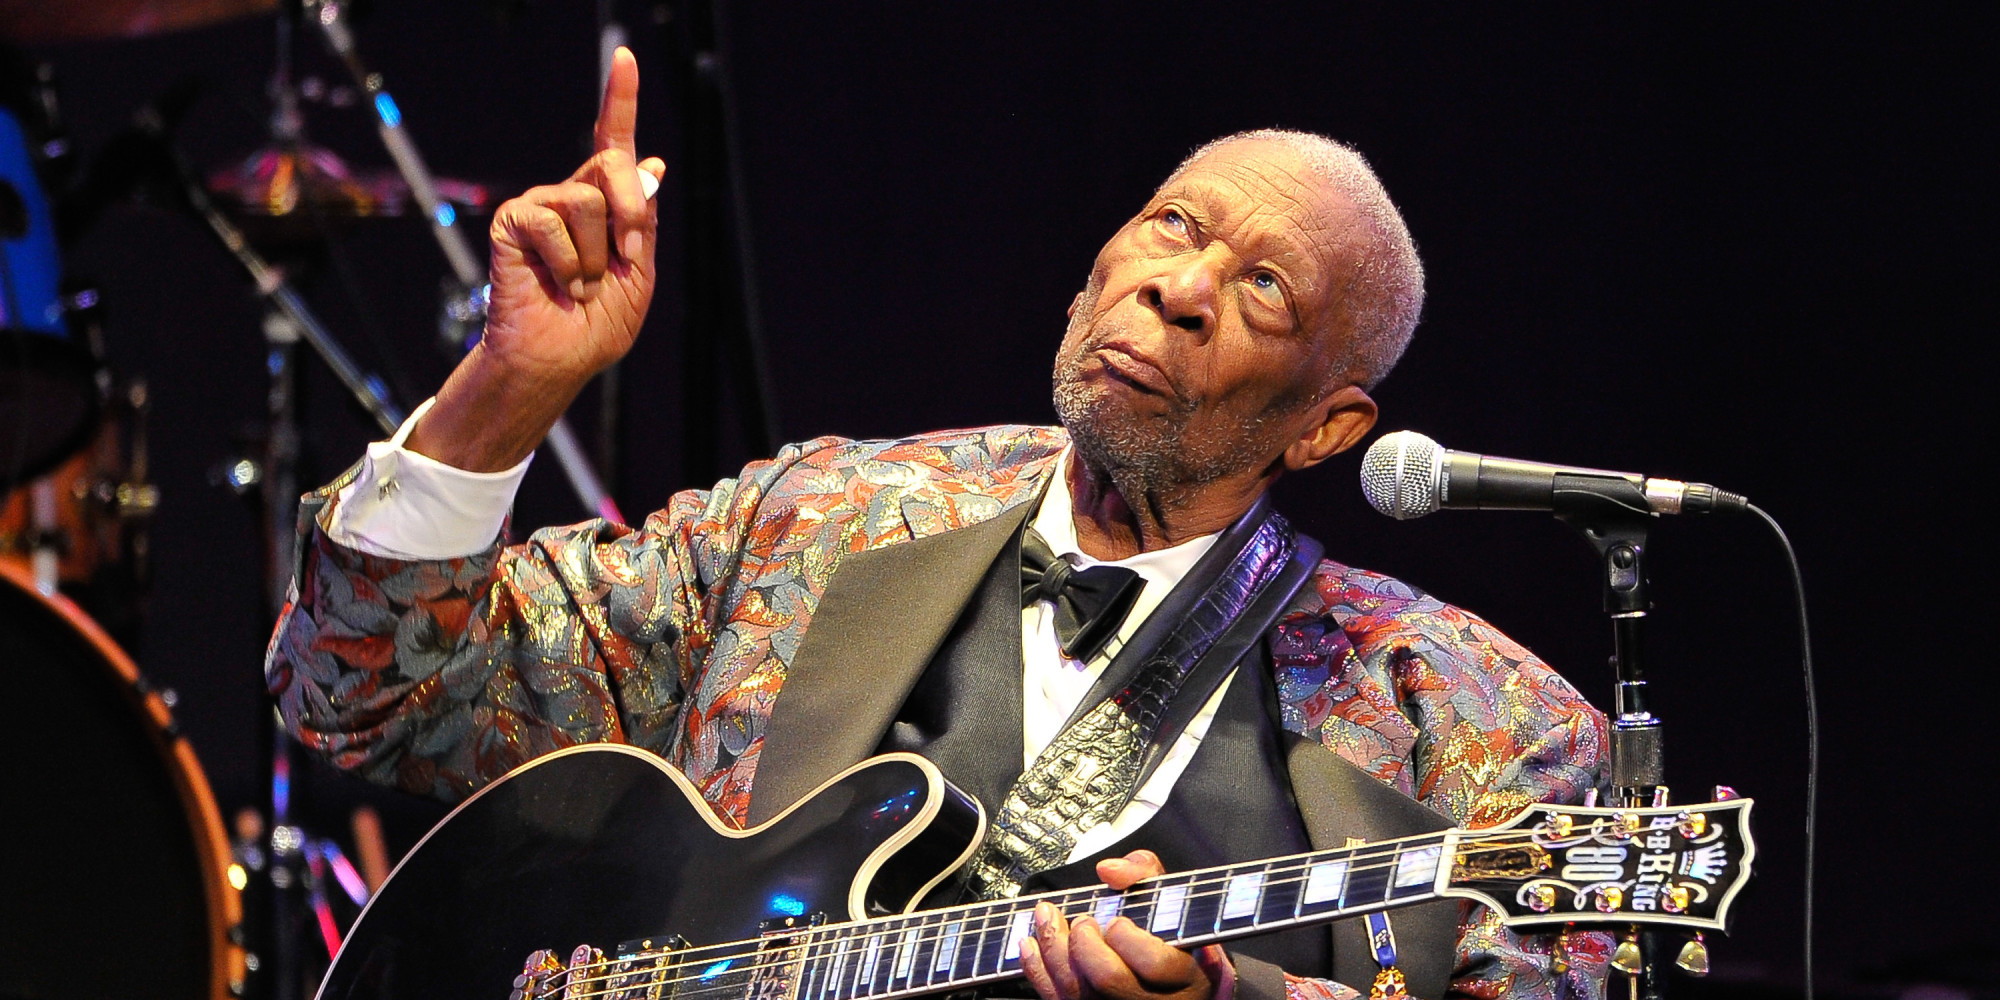 Erratic B B King Performance Leads To Early Departures